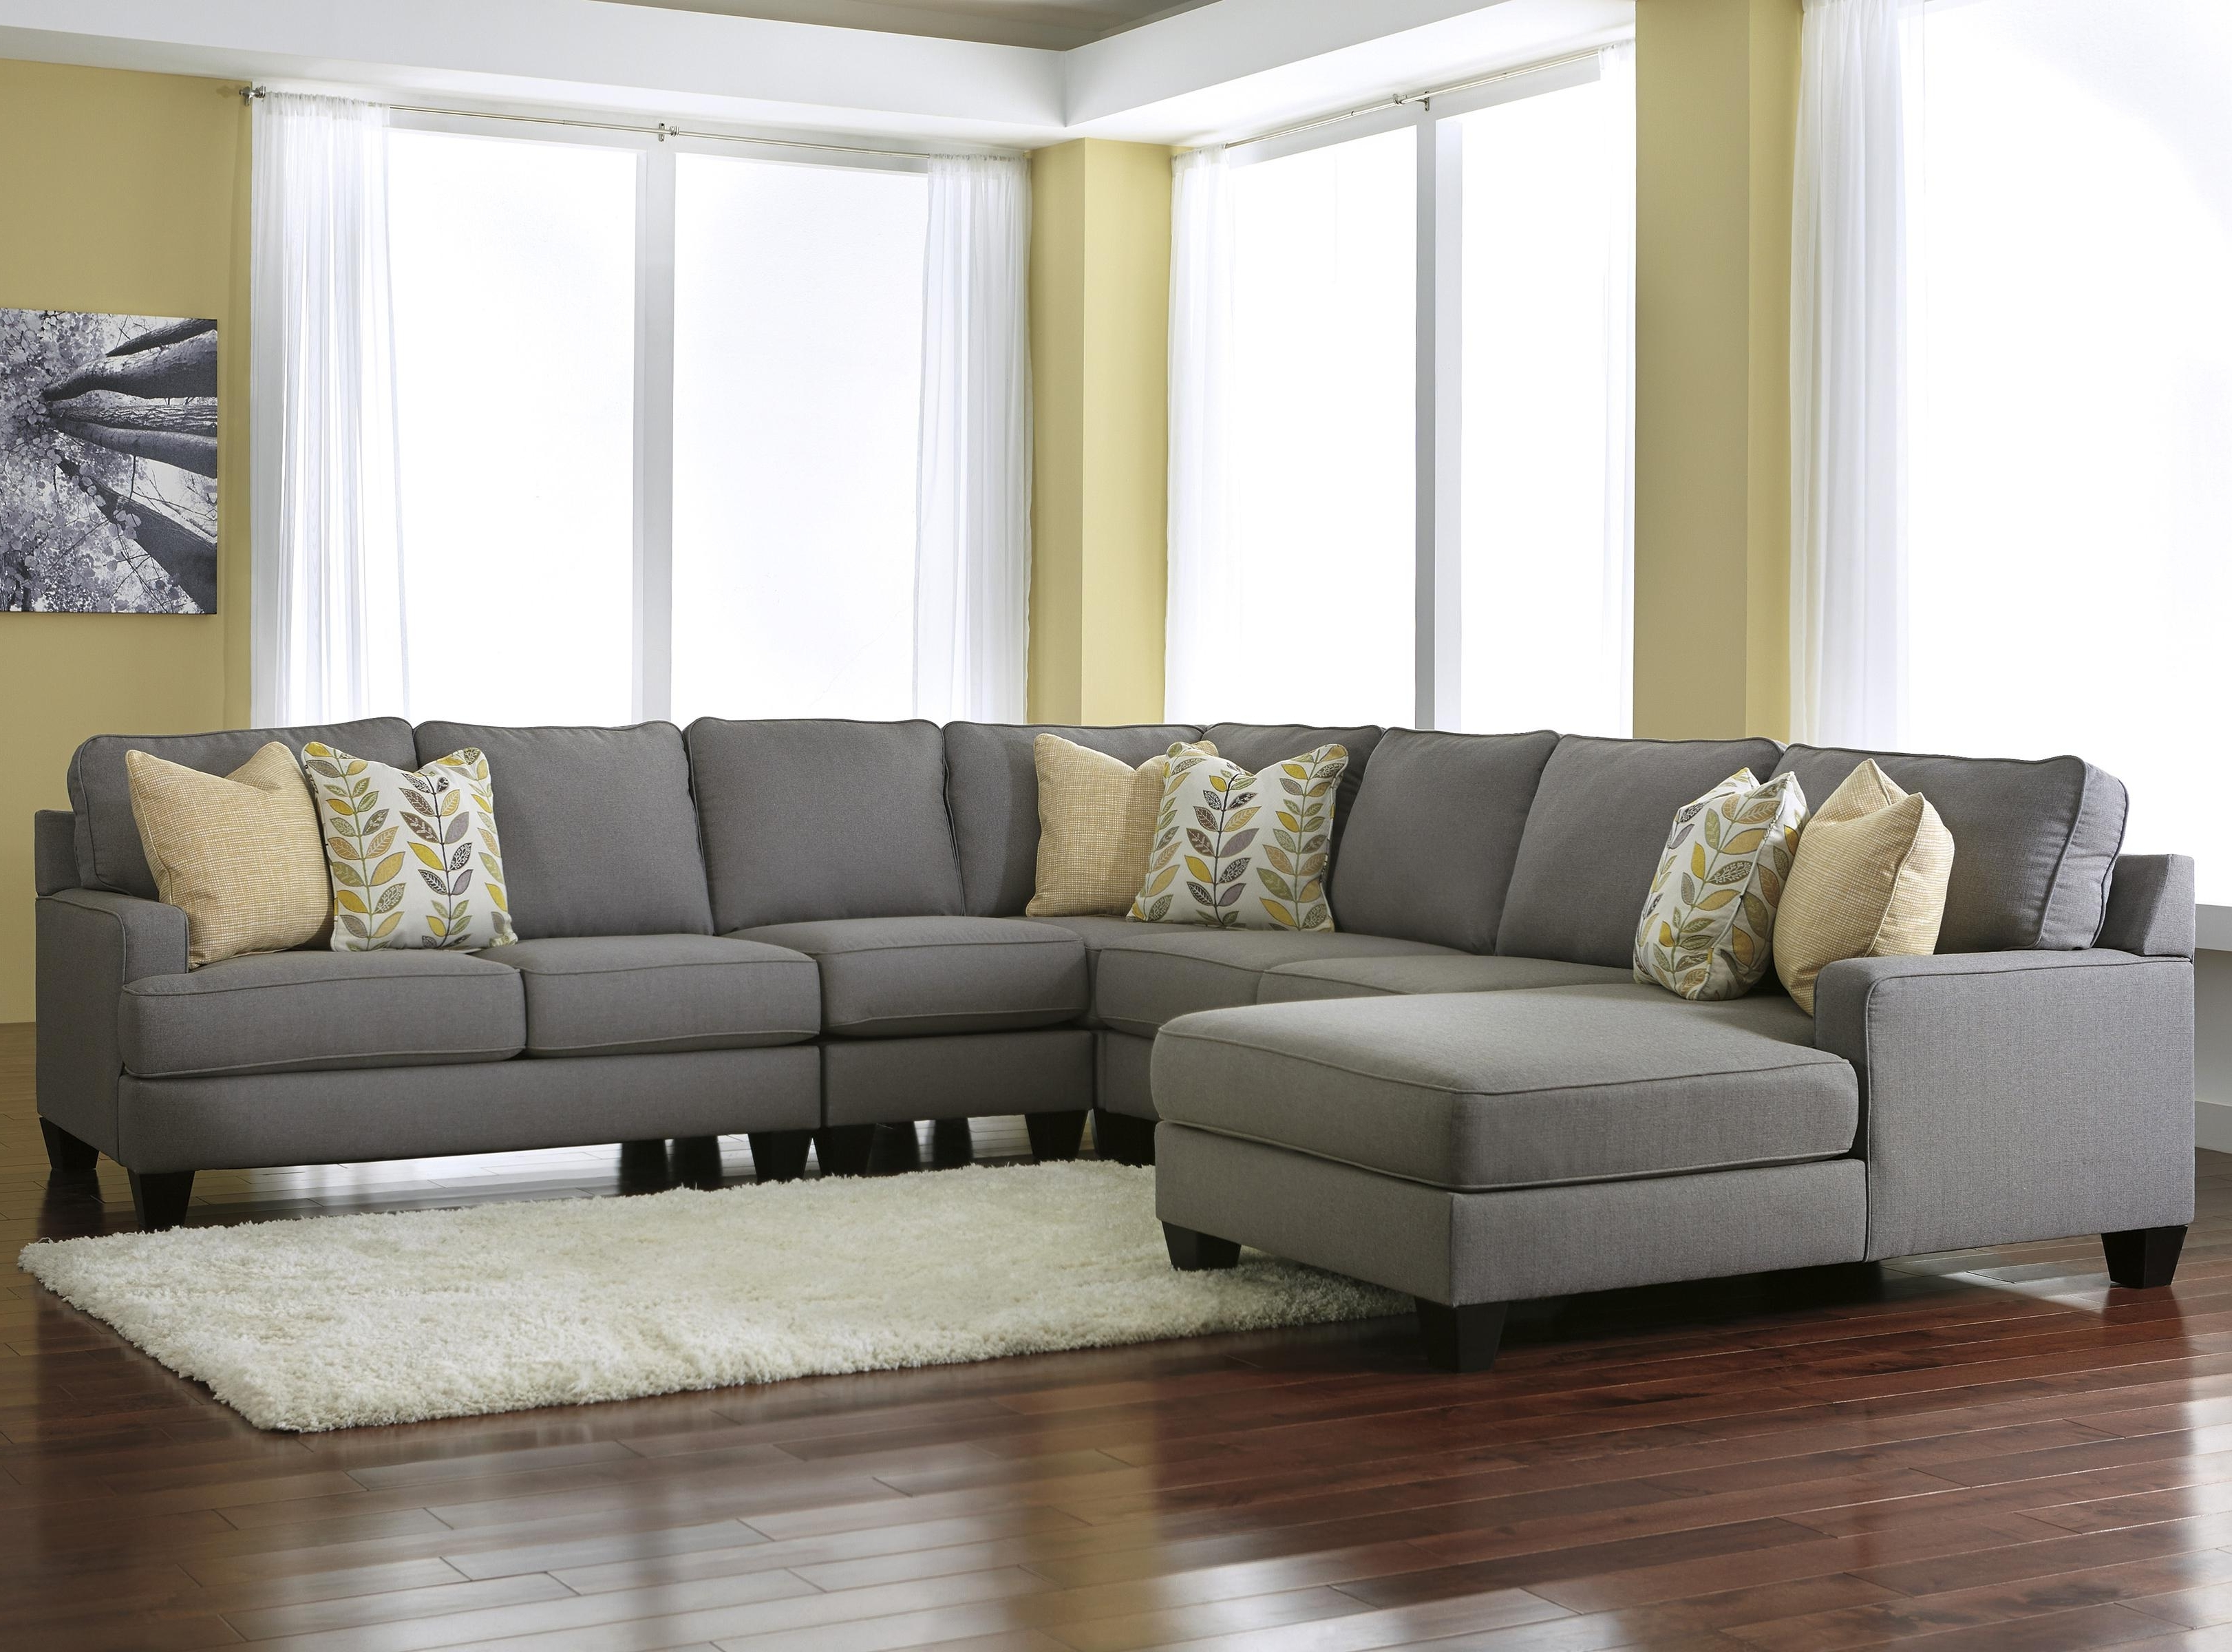 St Cloud Mn Sectional Sofas Intended For 2019 Signature Designashley Chamberly – Alloy Modern 5 Piece (View 15 of 20)